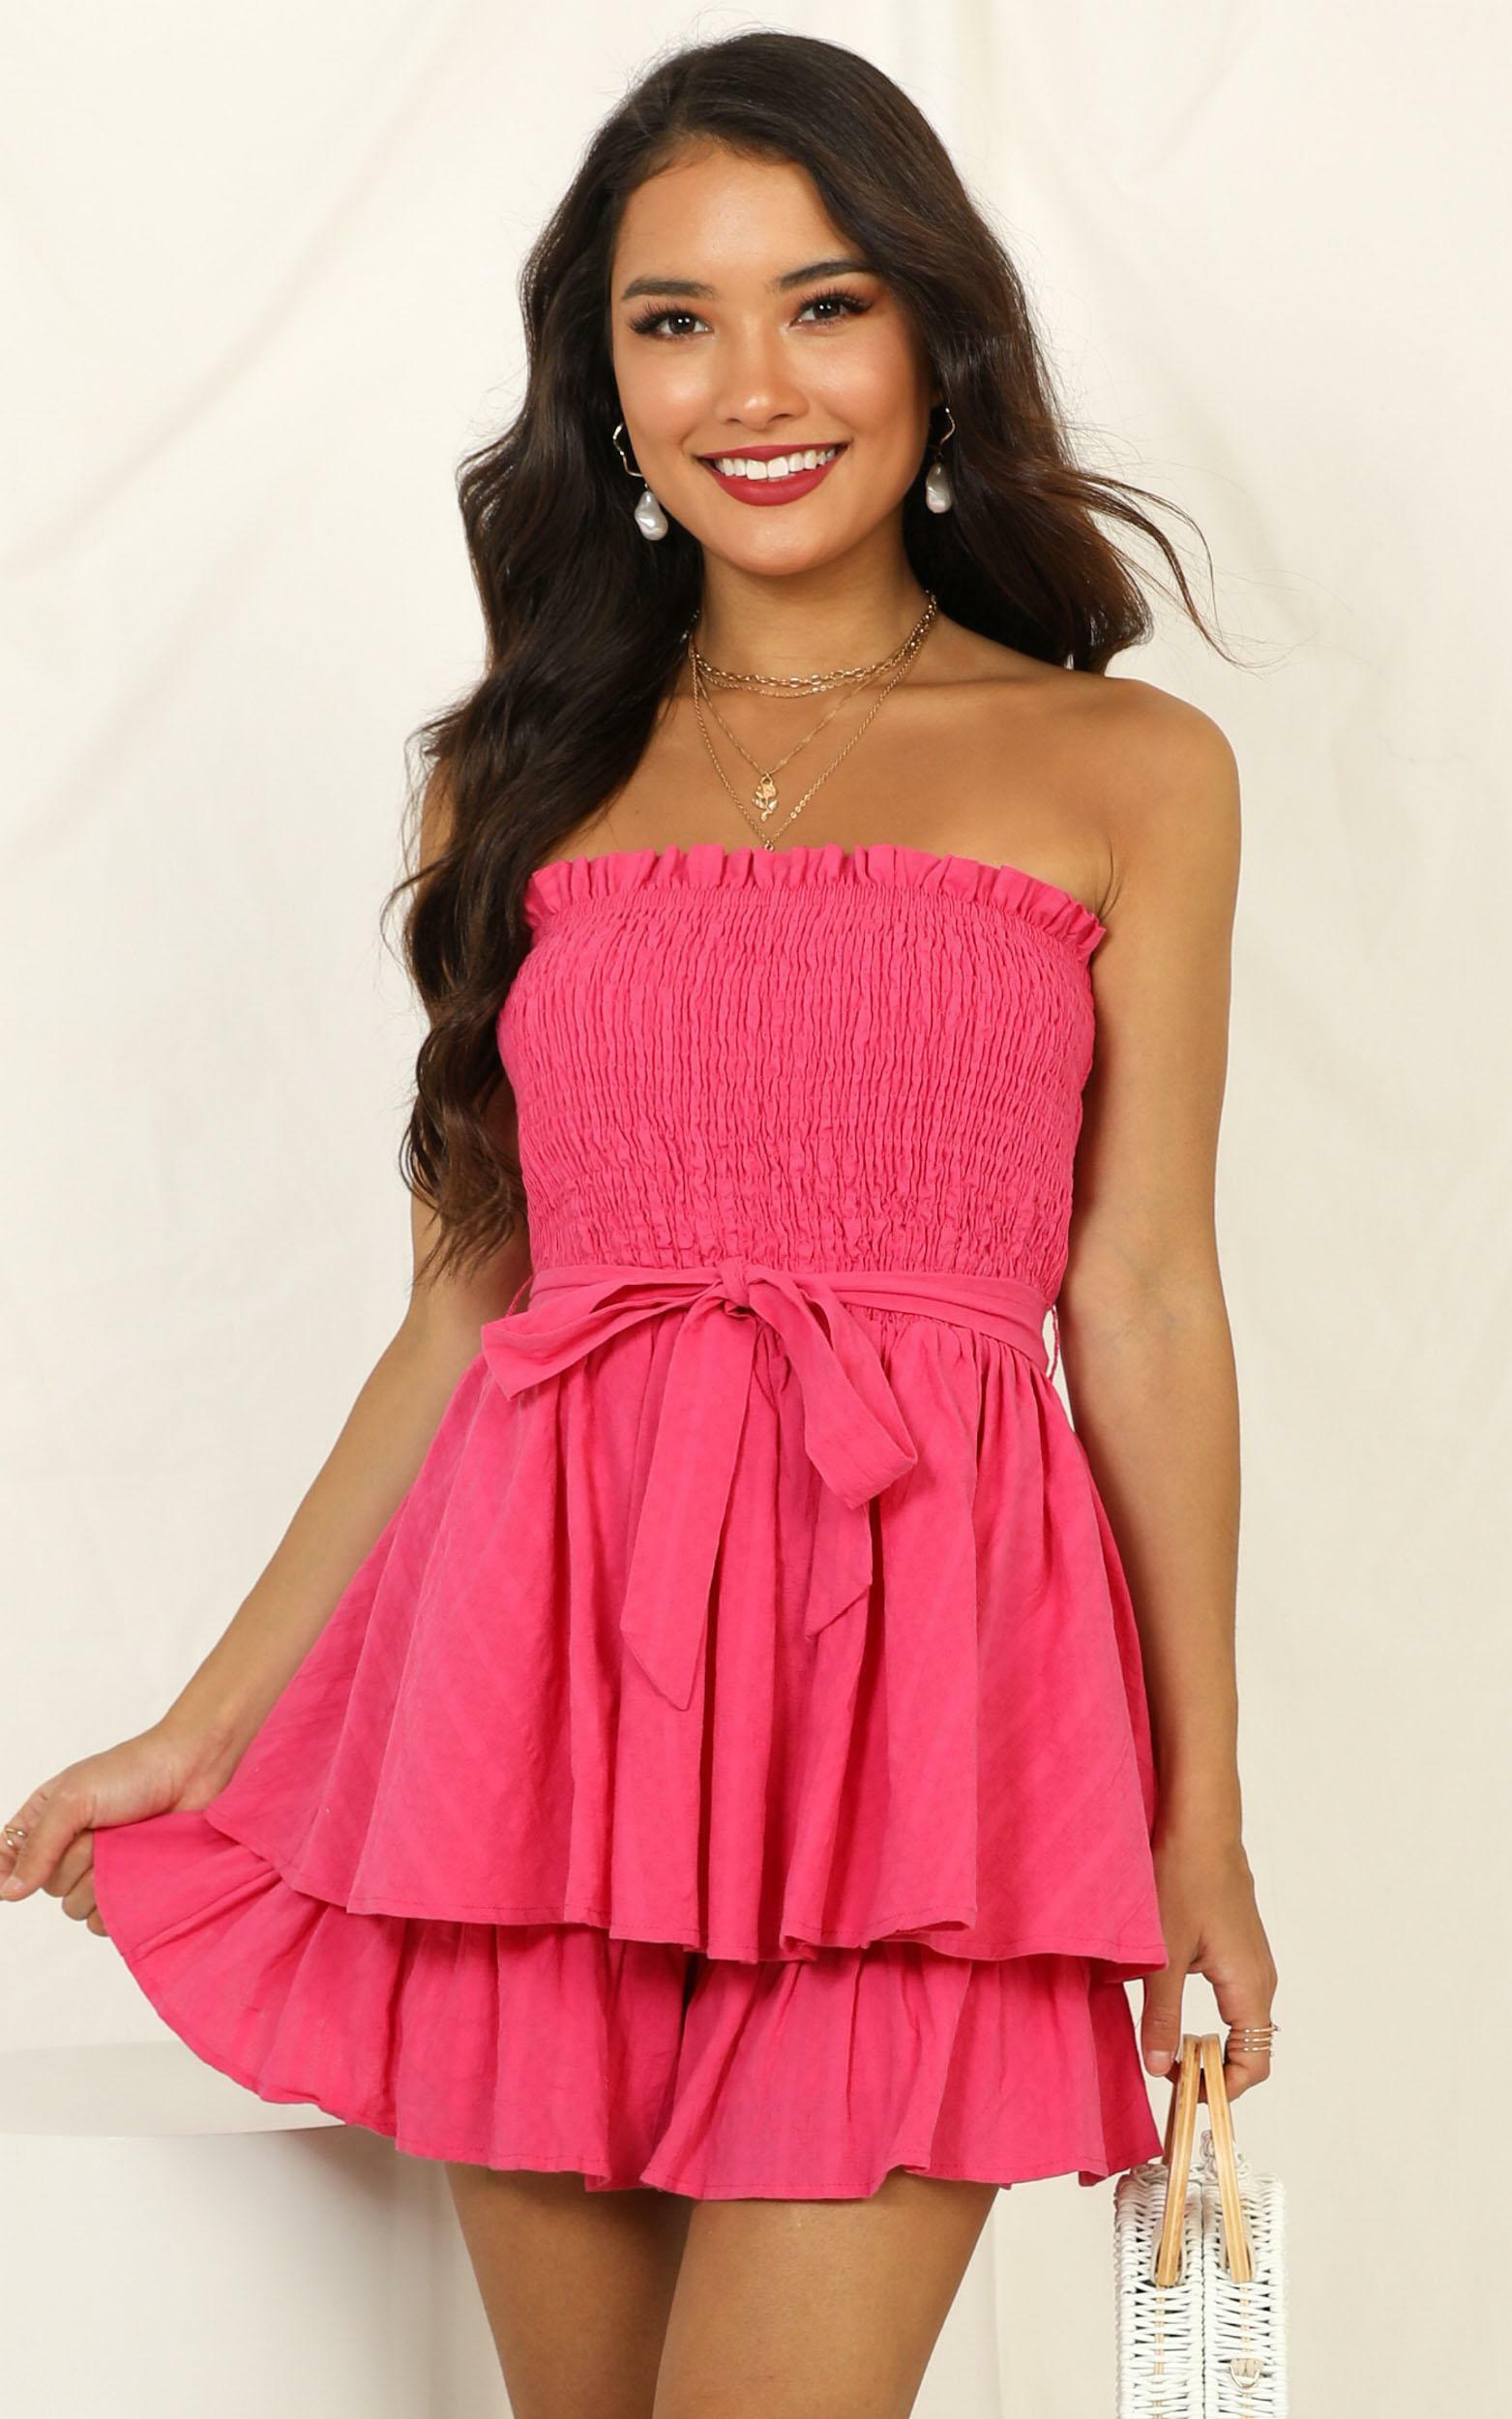 Mutual Love Playsuit in hot pink - 14 (XL), Pink, hi-res image number null